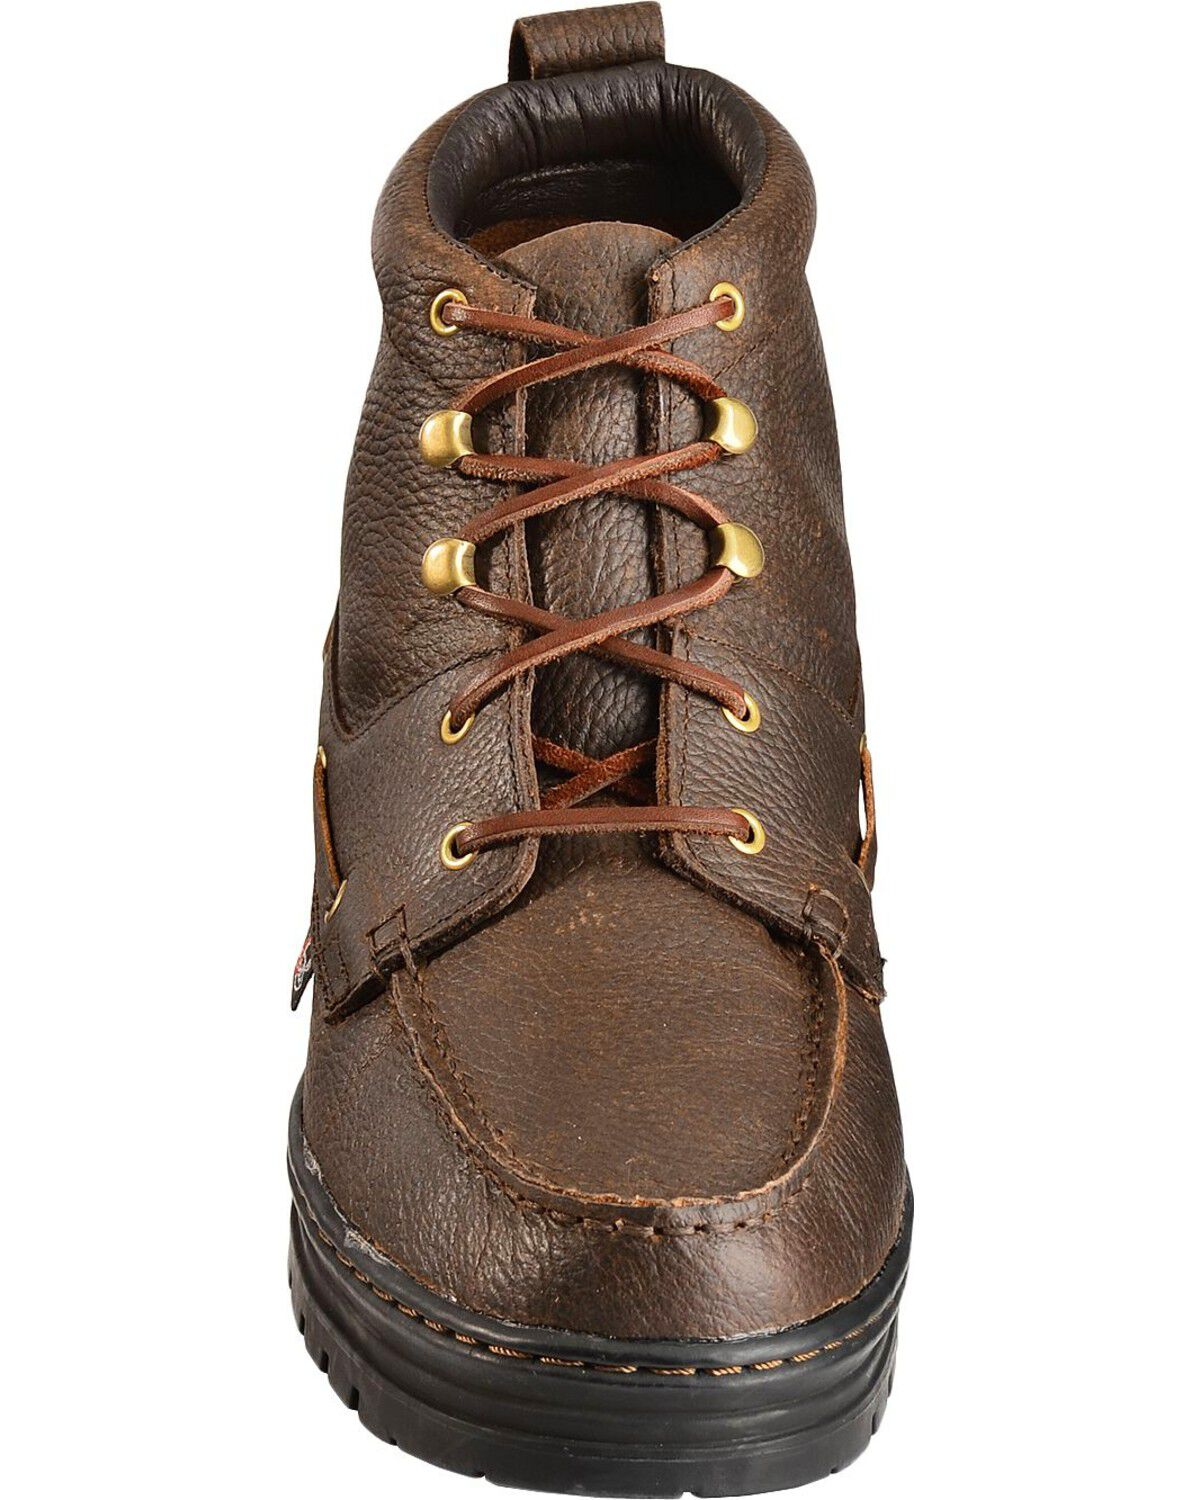 Justin Men's Chip Casual Lace-Up Boots